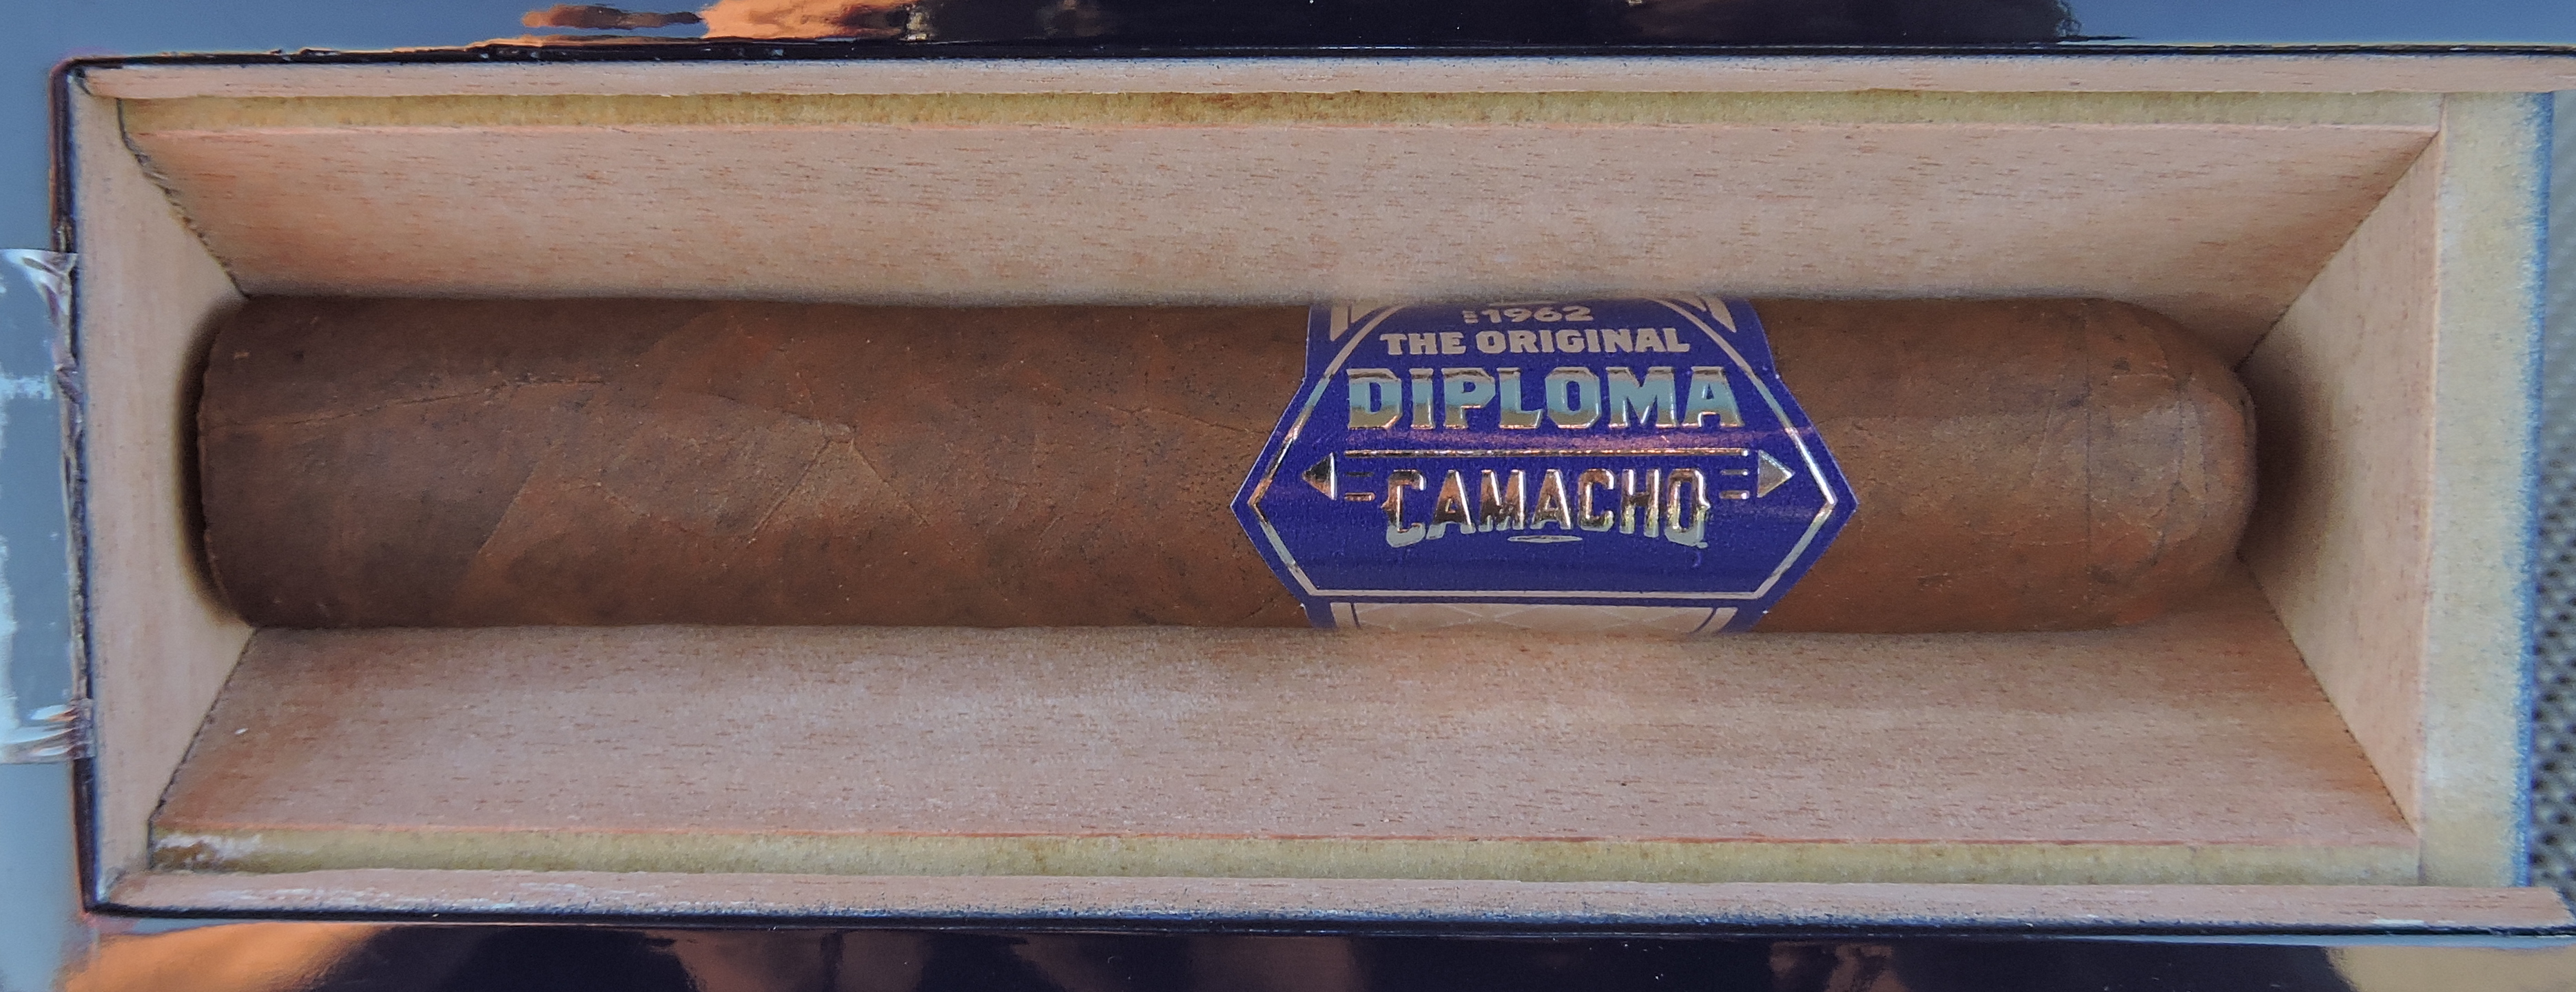 Camacho Diploma Special Selection-Open Coffin